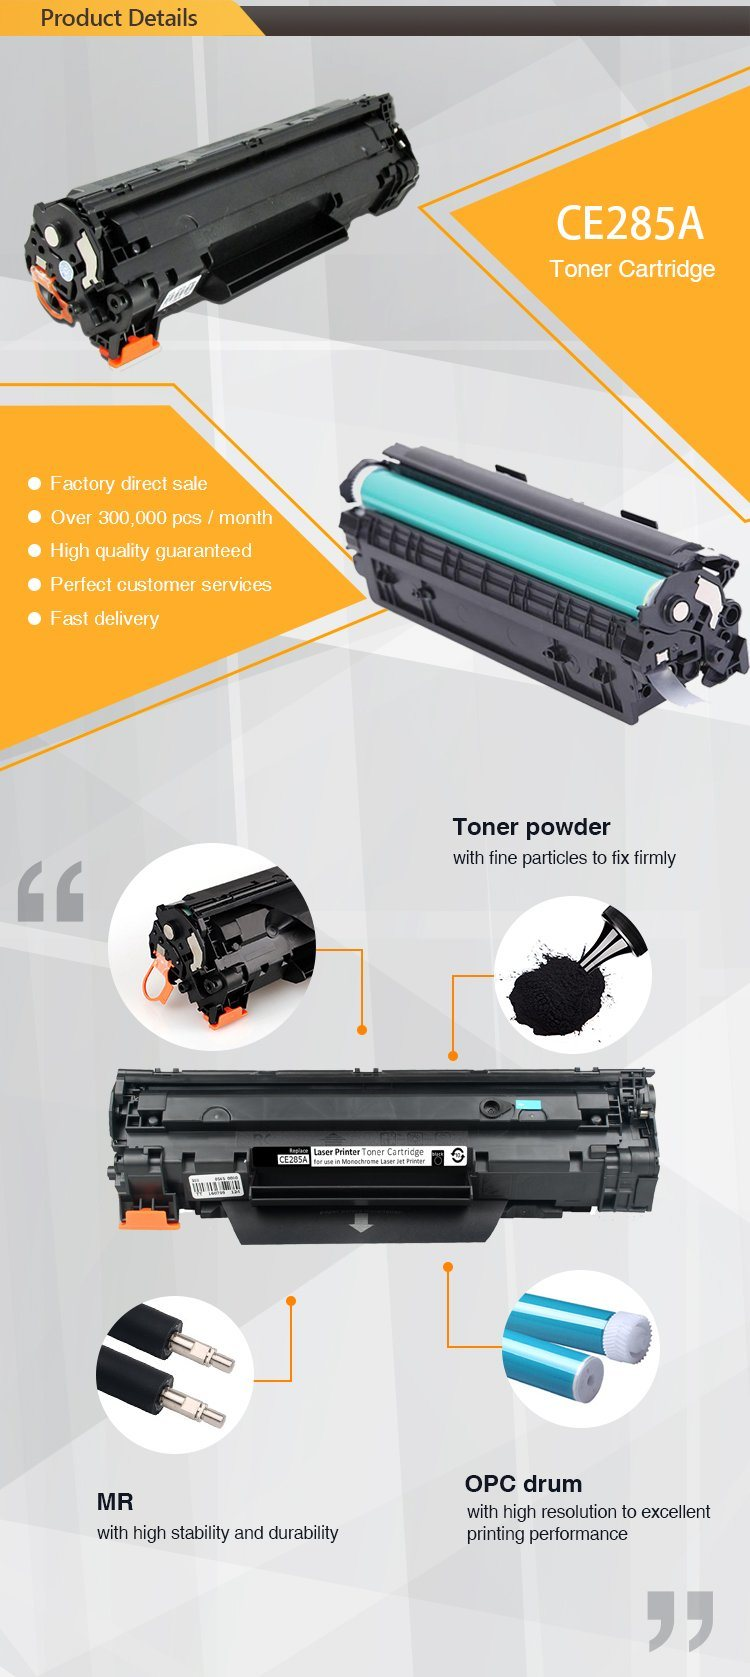 New Premium Ce285a 85a Compatible Toner Cartridge For Hp Laserjet Printer 1112 They Are The Property Of Their Respective Ownersand We Not Authorized To Sell Items Bearing Such Trademarks